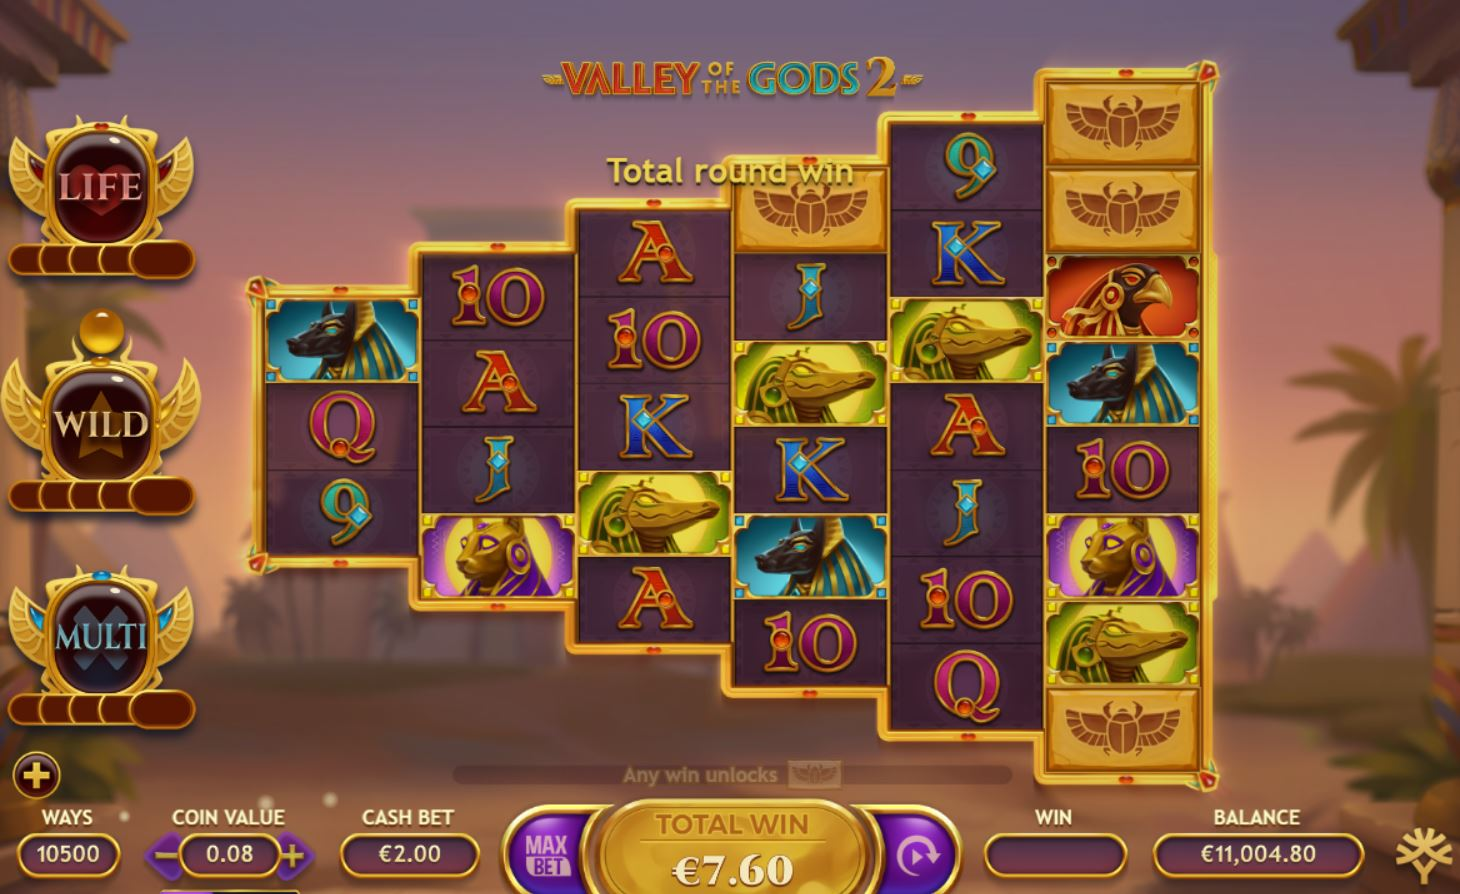 Valley of the Gods 2 Slot Game Play